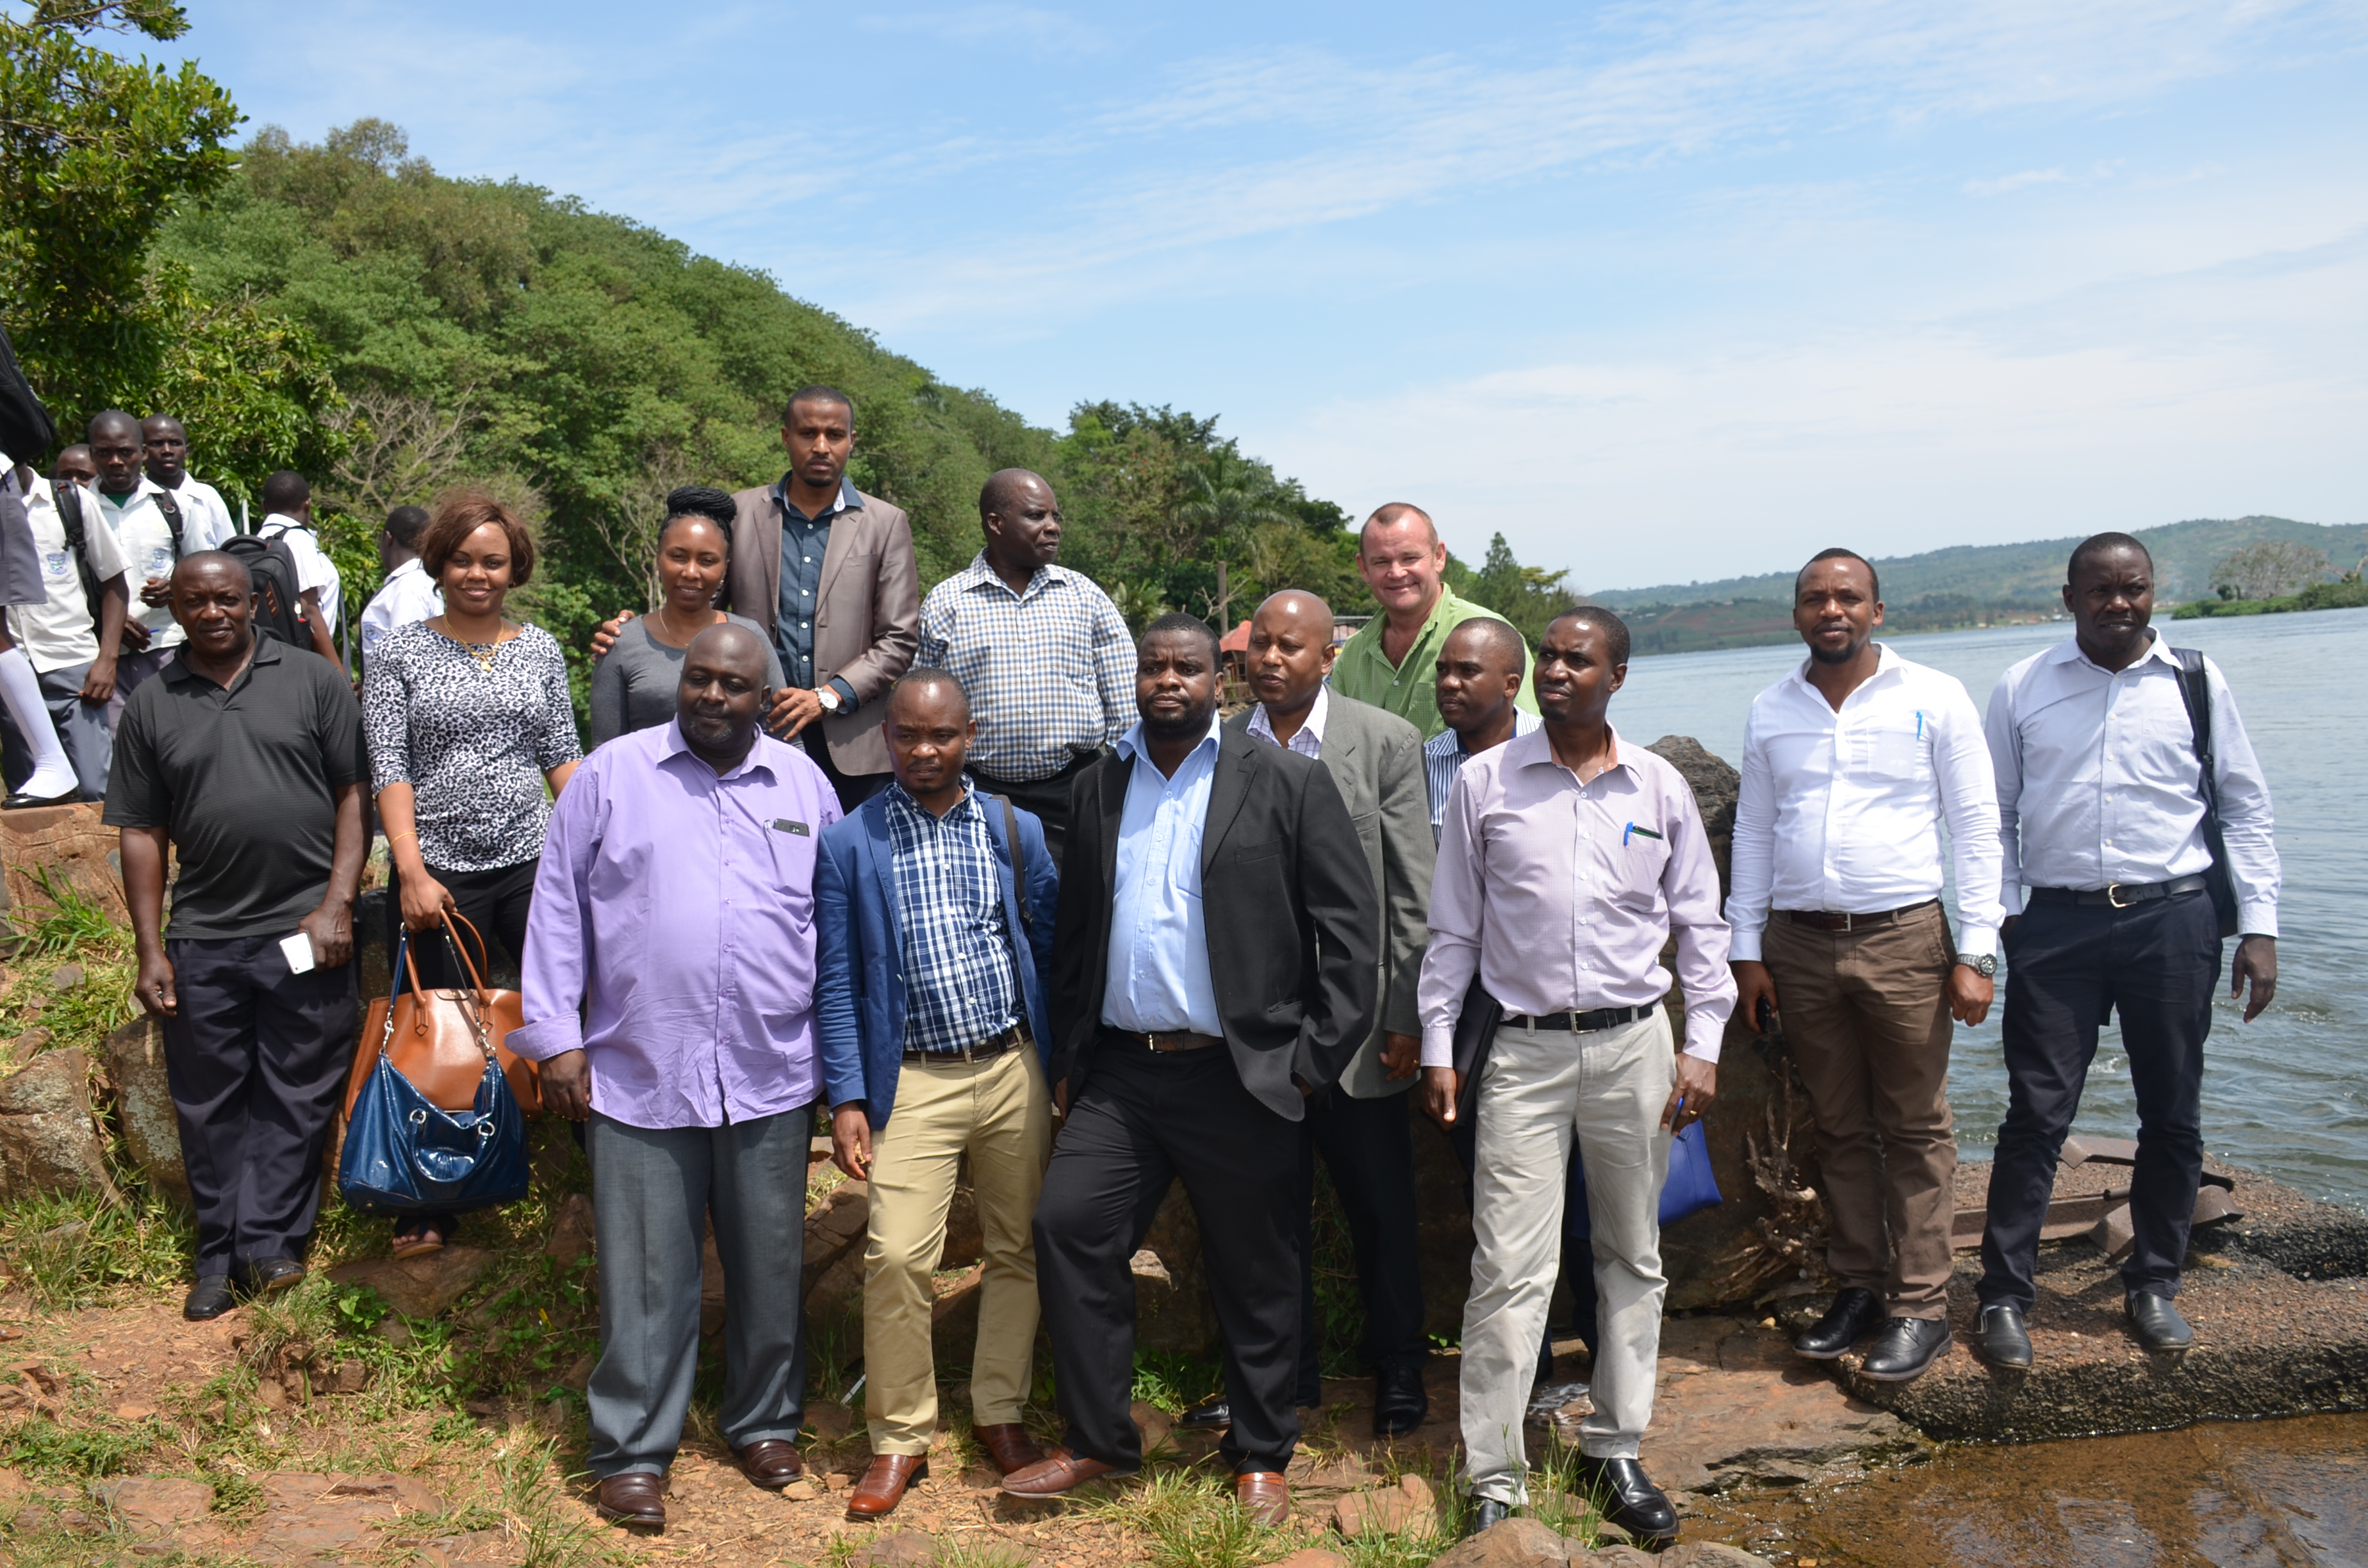 The Tanzanian delegation pose for a group photo at the Source of the Nile shortly after visiting the Jinja Ministry Zonal Office to see how business is conducted.